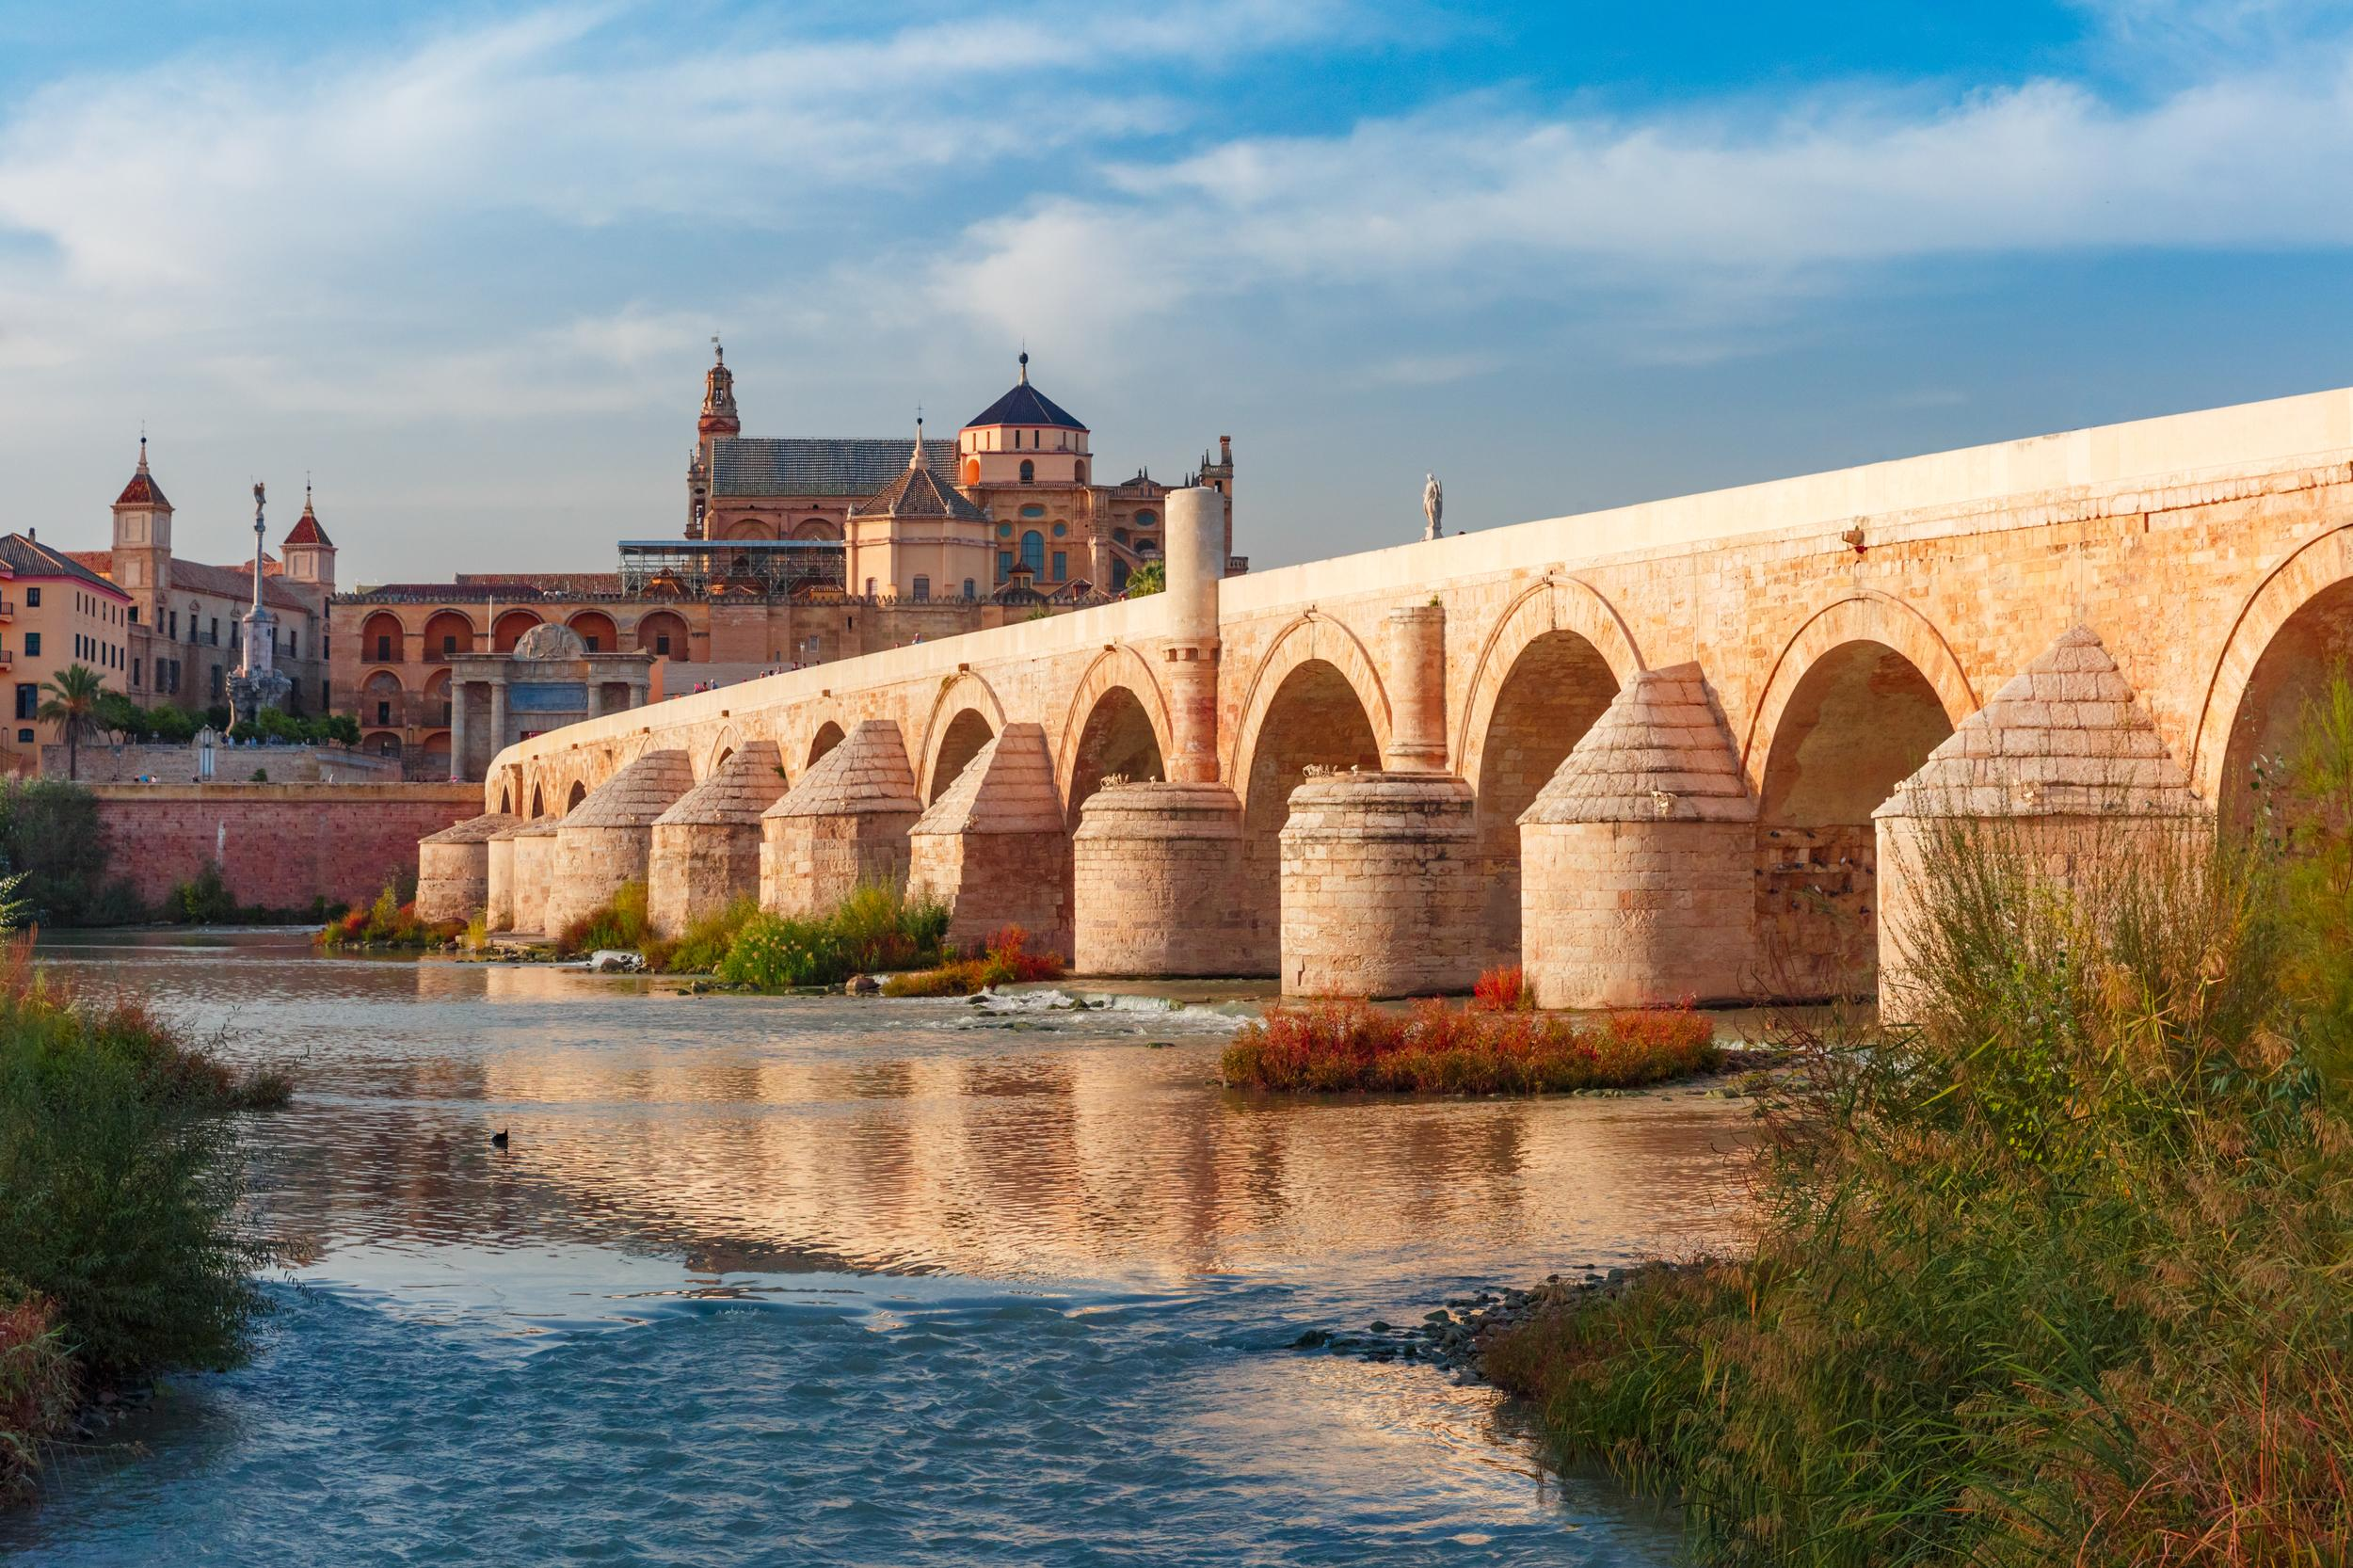 """<p><strong>GOT location</strong>: Volantis</p>  <p><strong>Real life locatio</strong>n: Cordoba, Spain</p>  <p>Imagine the bustling markets thatTyrion Lannister and Varys walked through in Volantis as you visit Cordoba and the Roman Bridge.</p>  <p><strong><a href=""""https://fave.co/2v8BVgw"""">Book your trip.</a></strong></p>"""